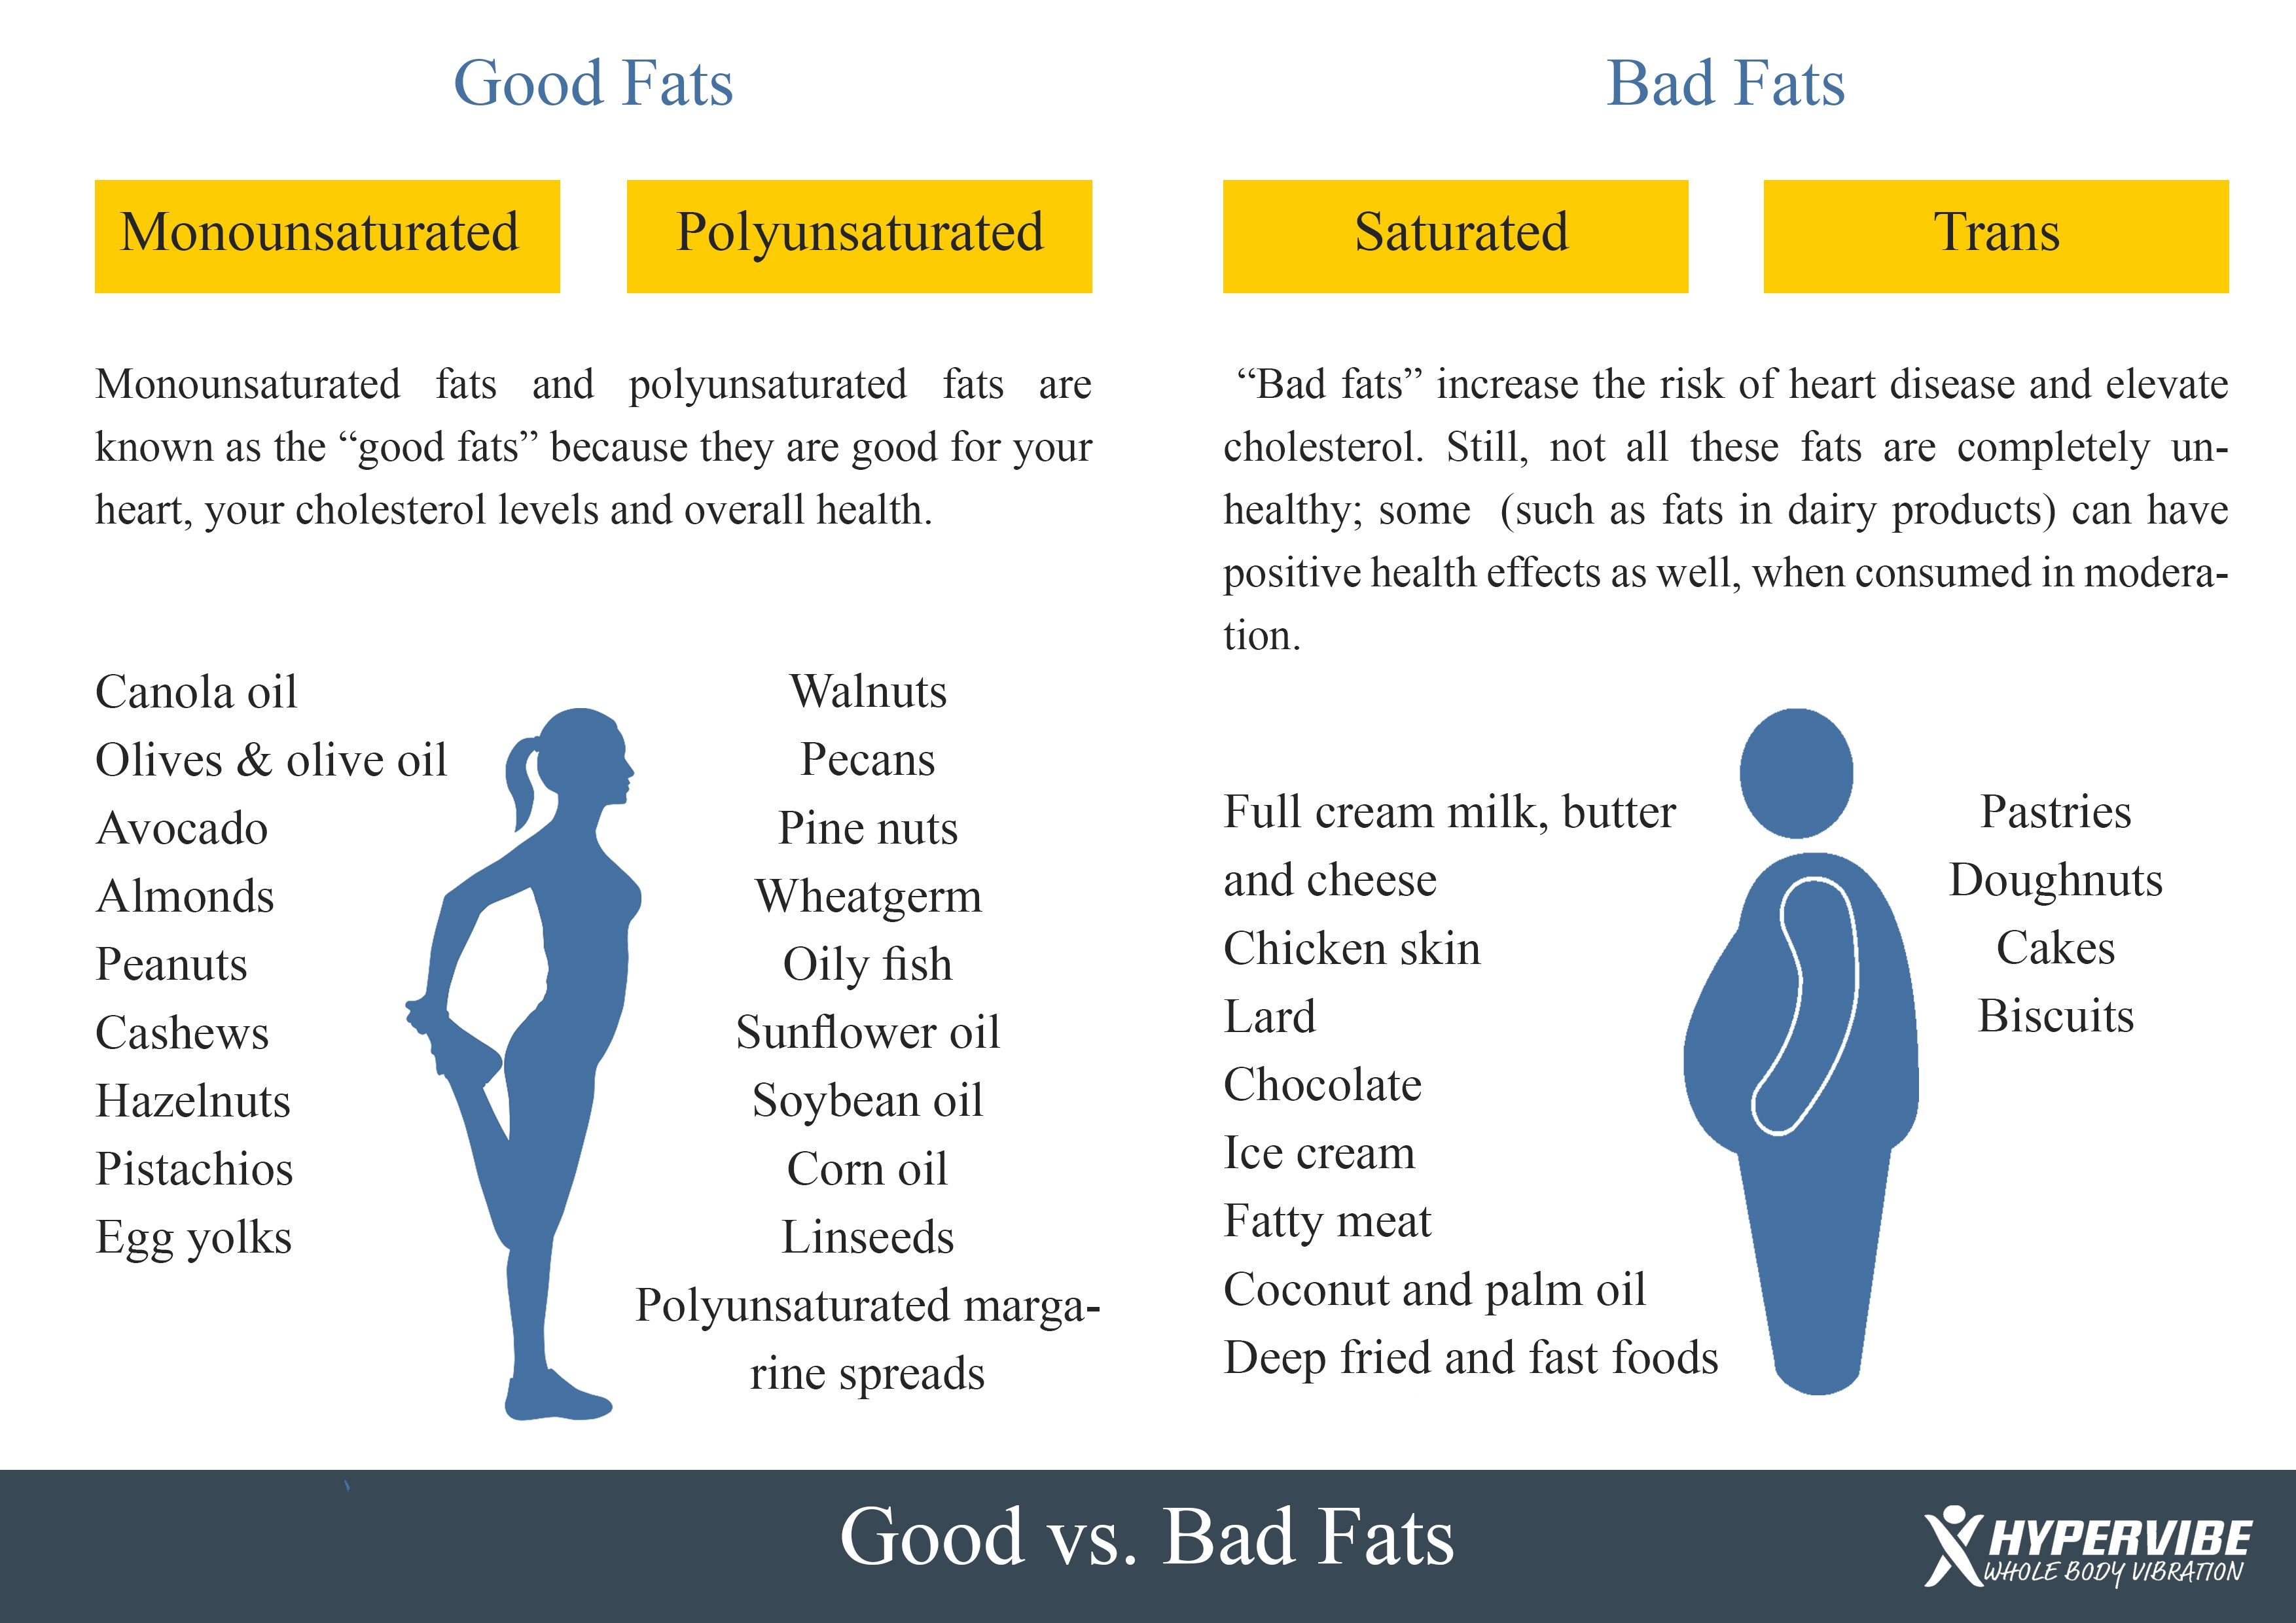 Actually eating good fat like fish meat olive oil is for Fish oils are a good dietary source of